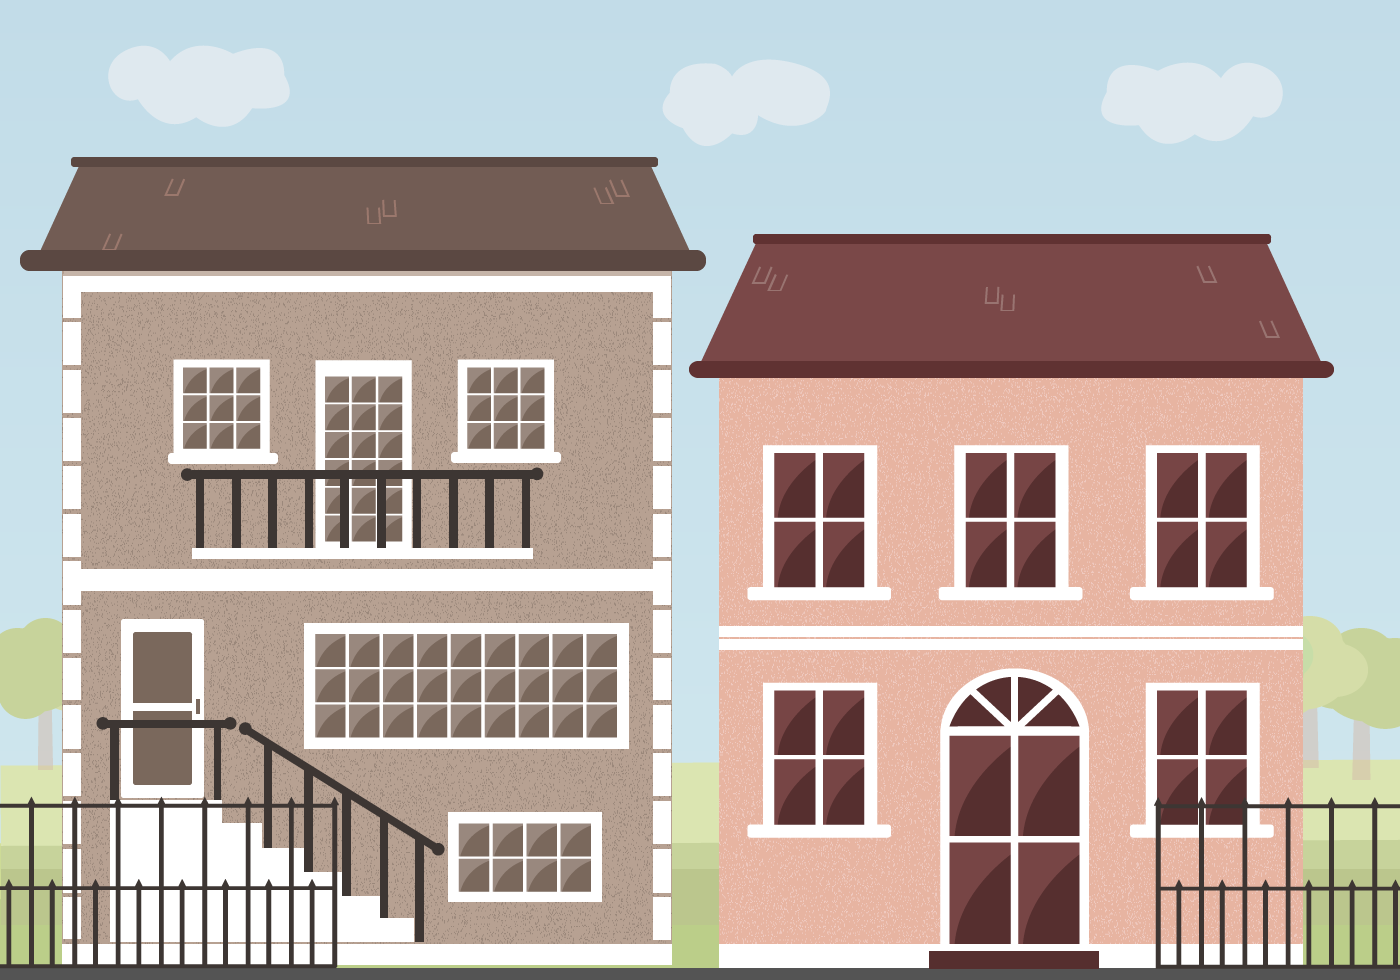 Free Building Vector - Download Free Vector Art, Stock Graphics & Images